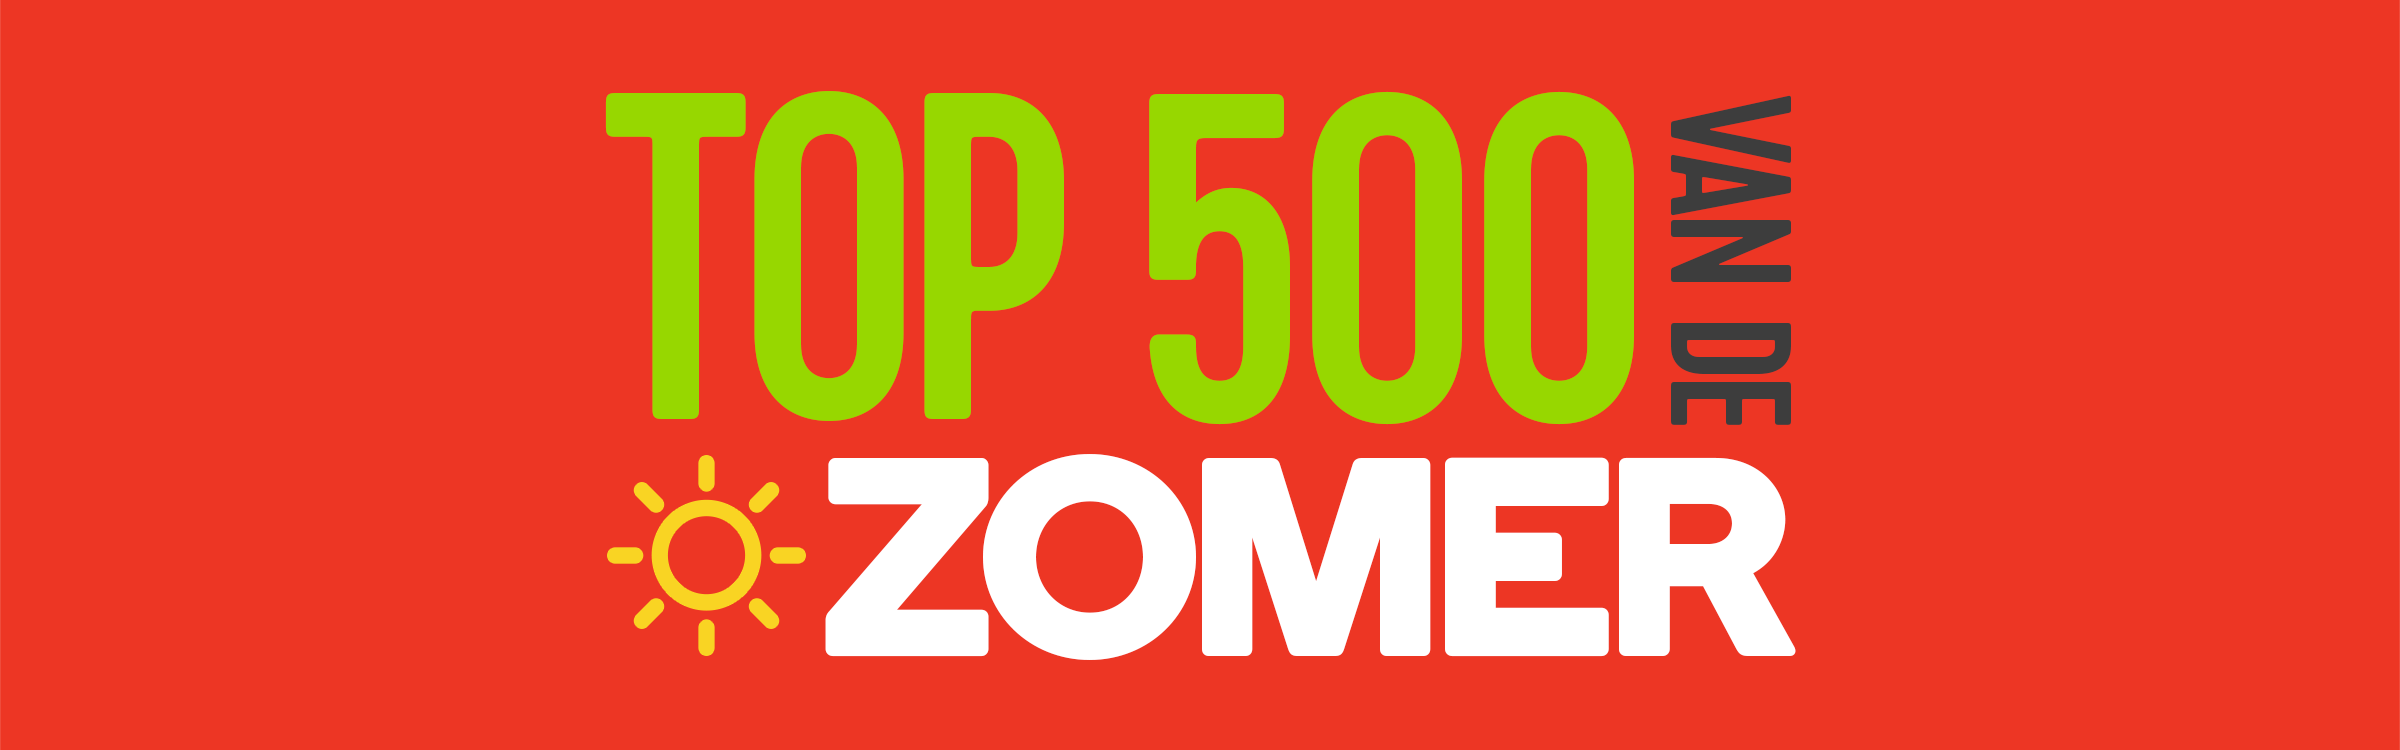 Header top500vdzomer